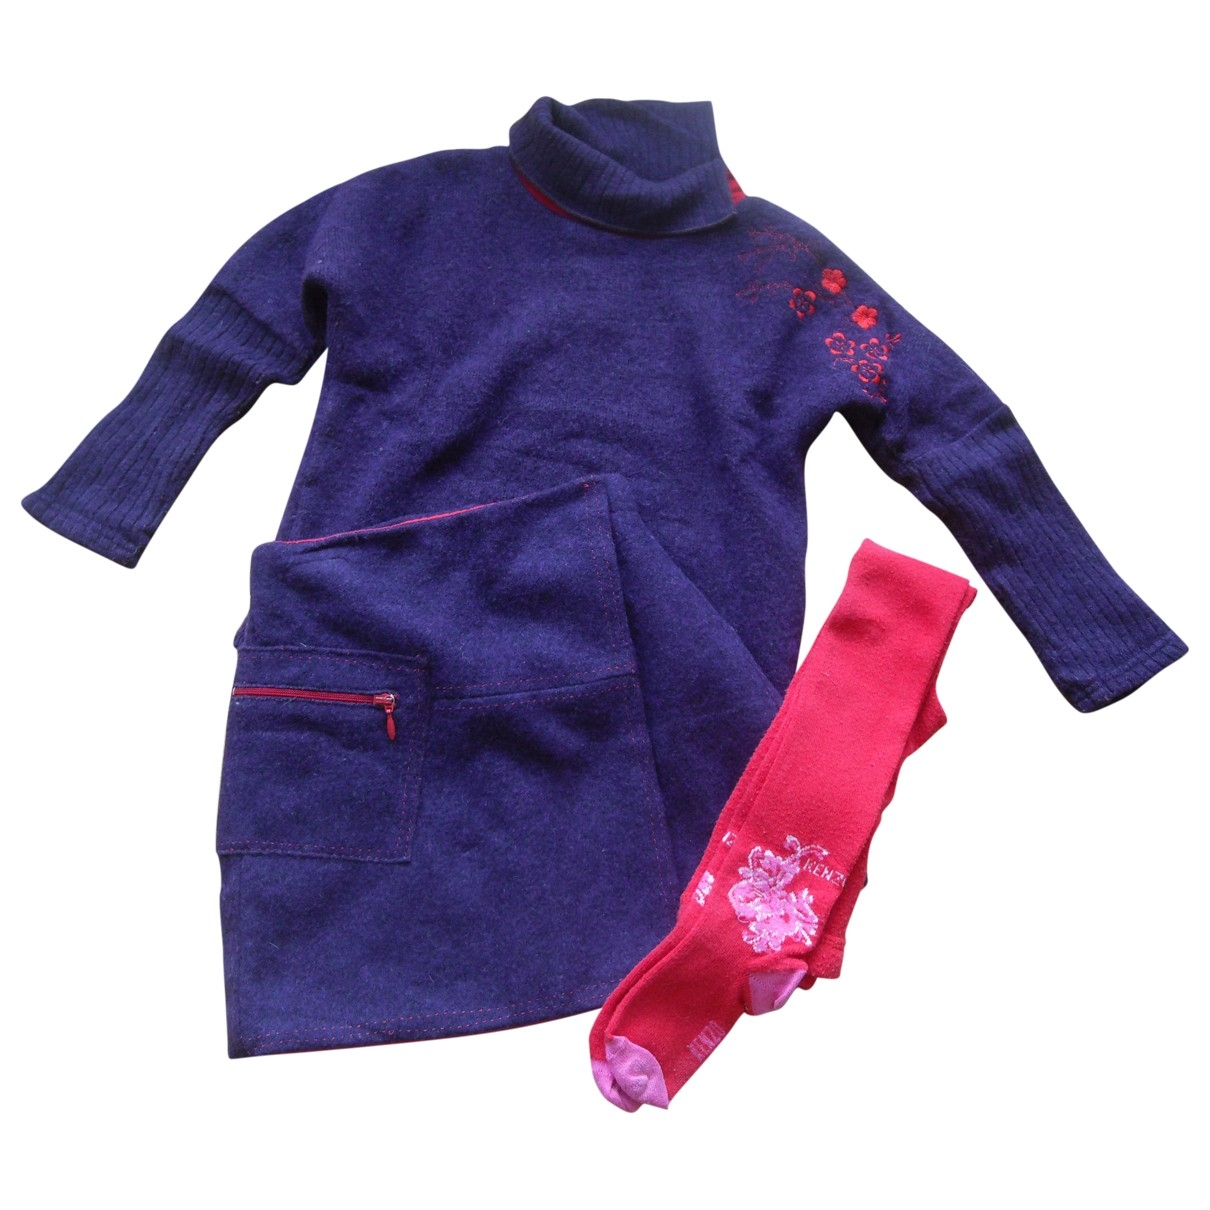 Kenzo \N Purple Wool Outfits for Kids 4 years - up to 102cm FR